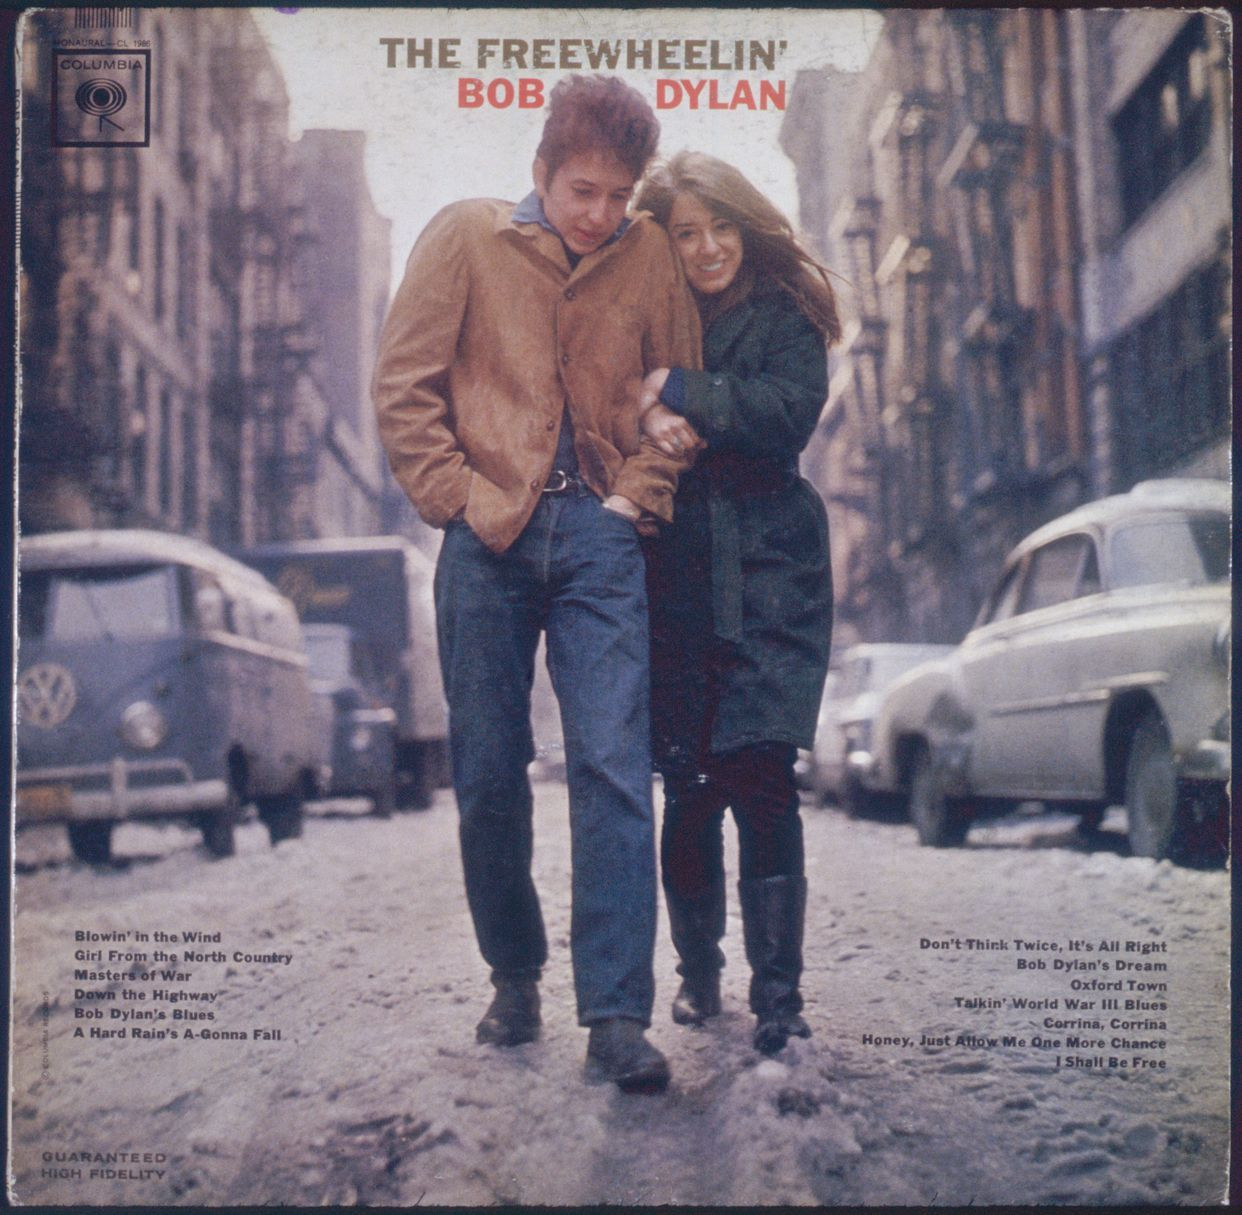 These Are The 10 Most Valuable Vinyl Records You Could Own Bob Dylan Freewheelin Bob Dylan Album Covers Bob Dylan